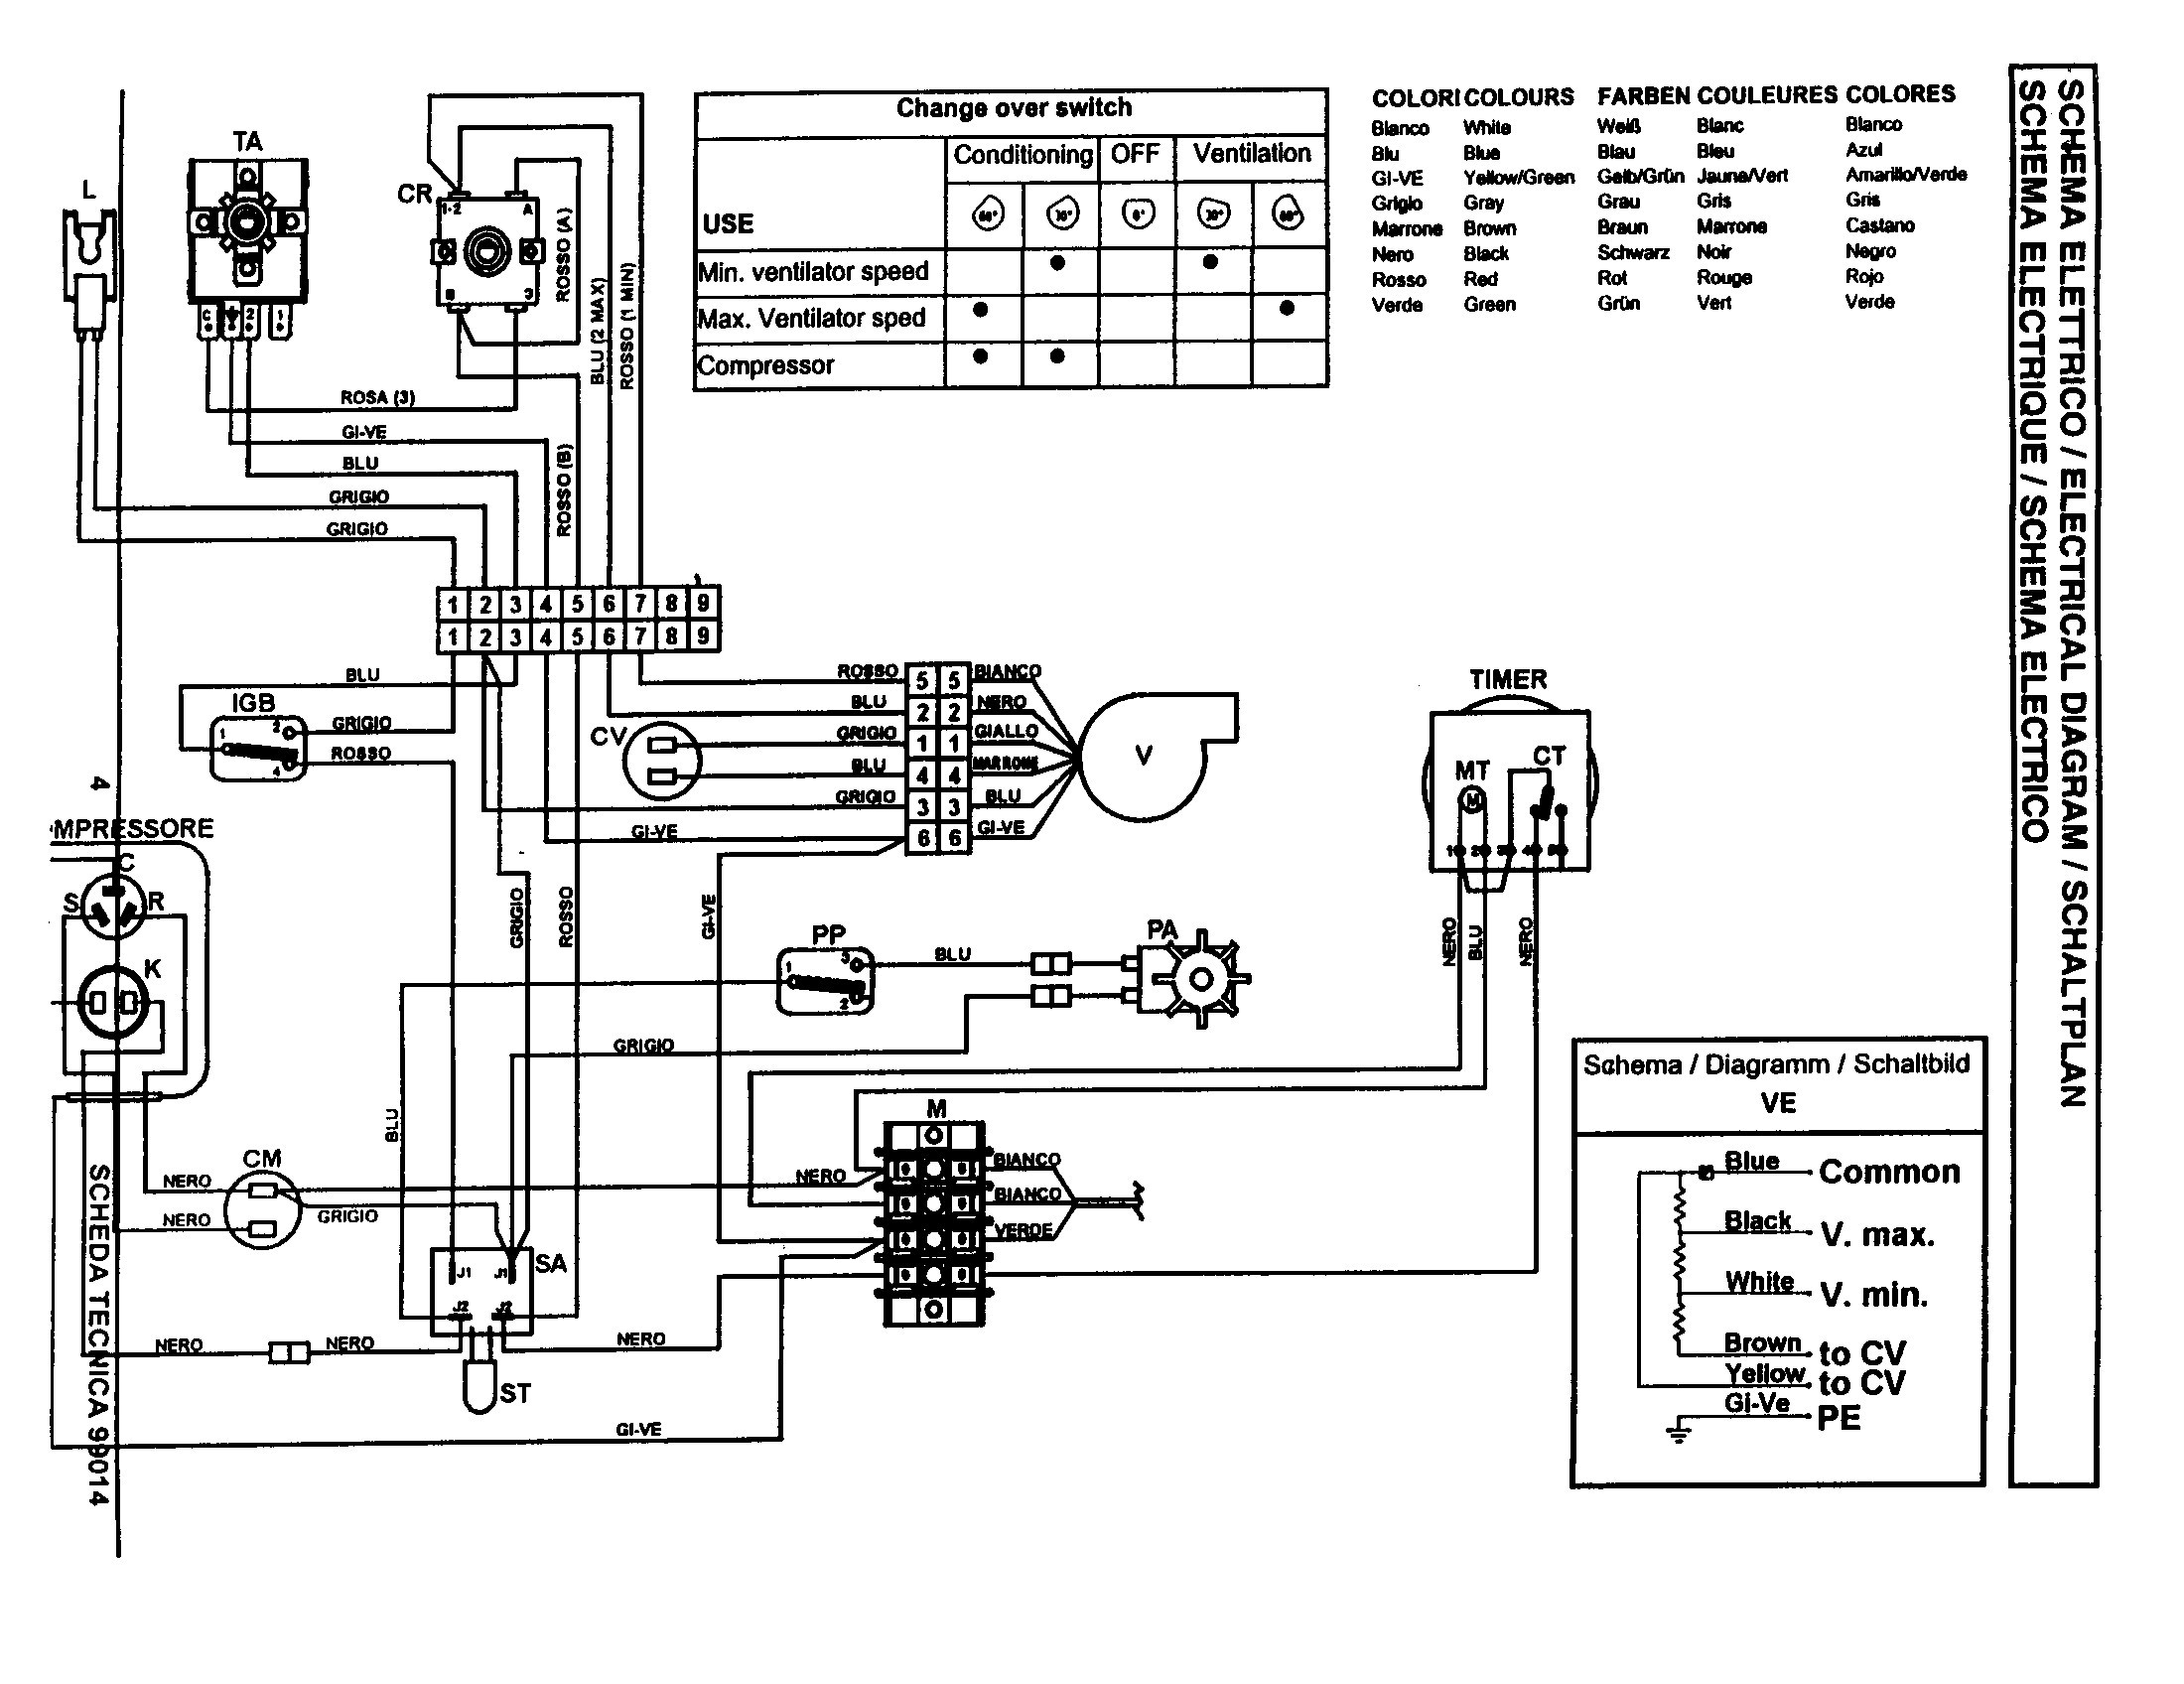 lanzar snv695n wiring diagram lanzar - wiring diagrams data  ussel